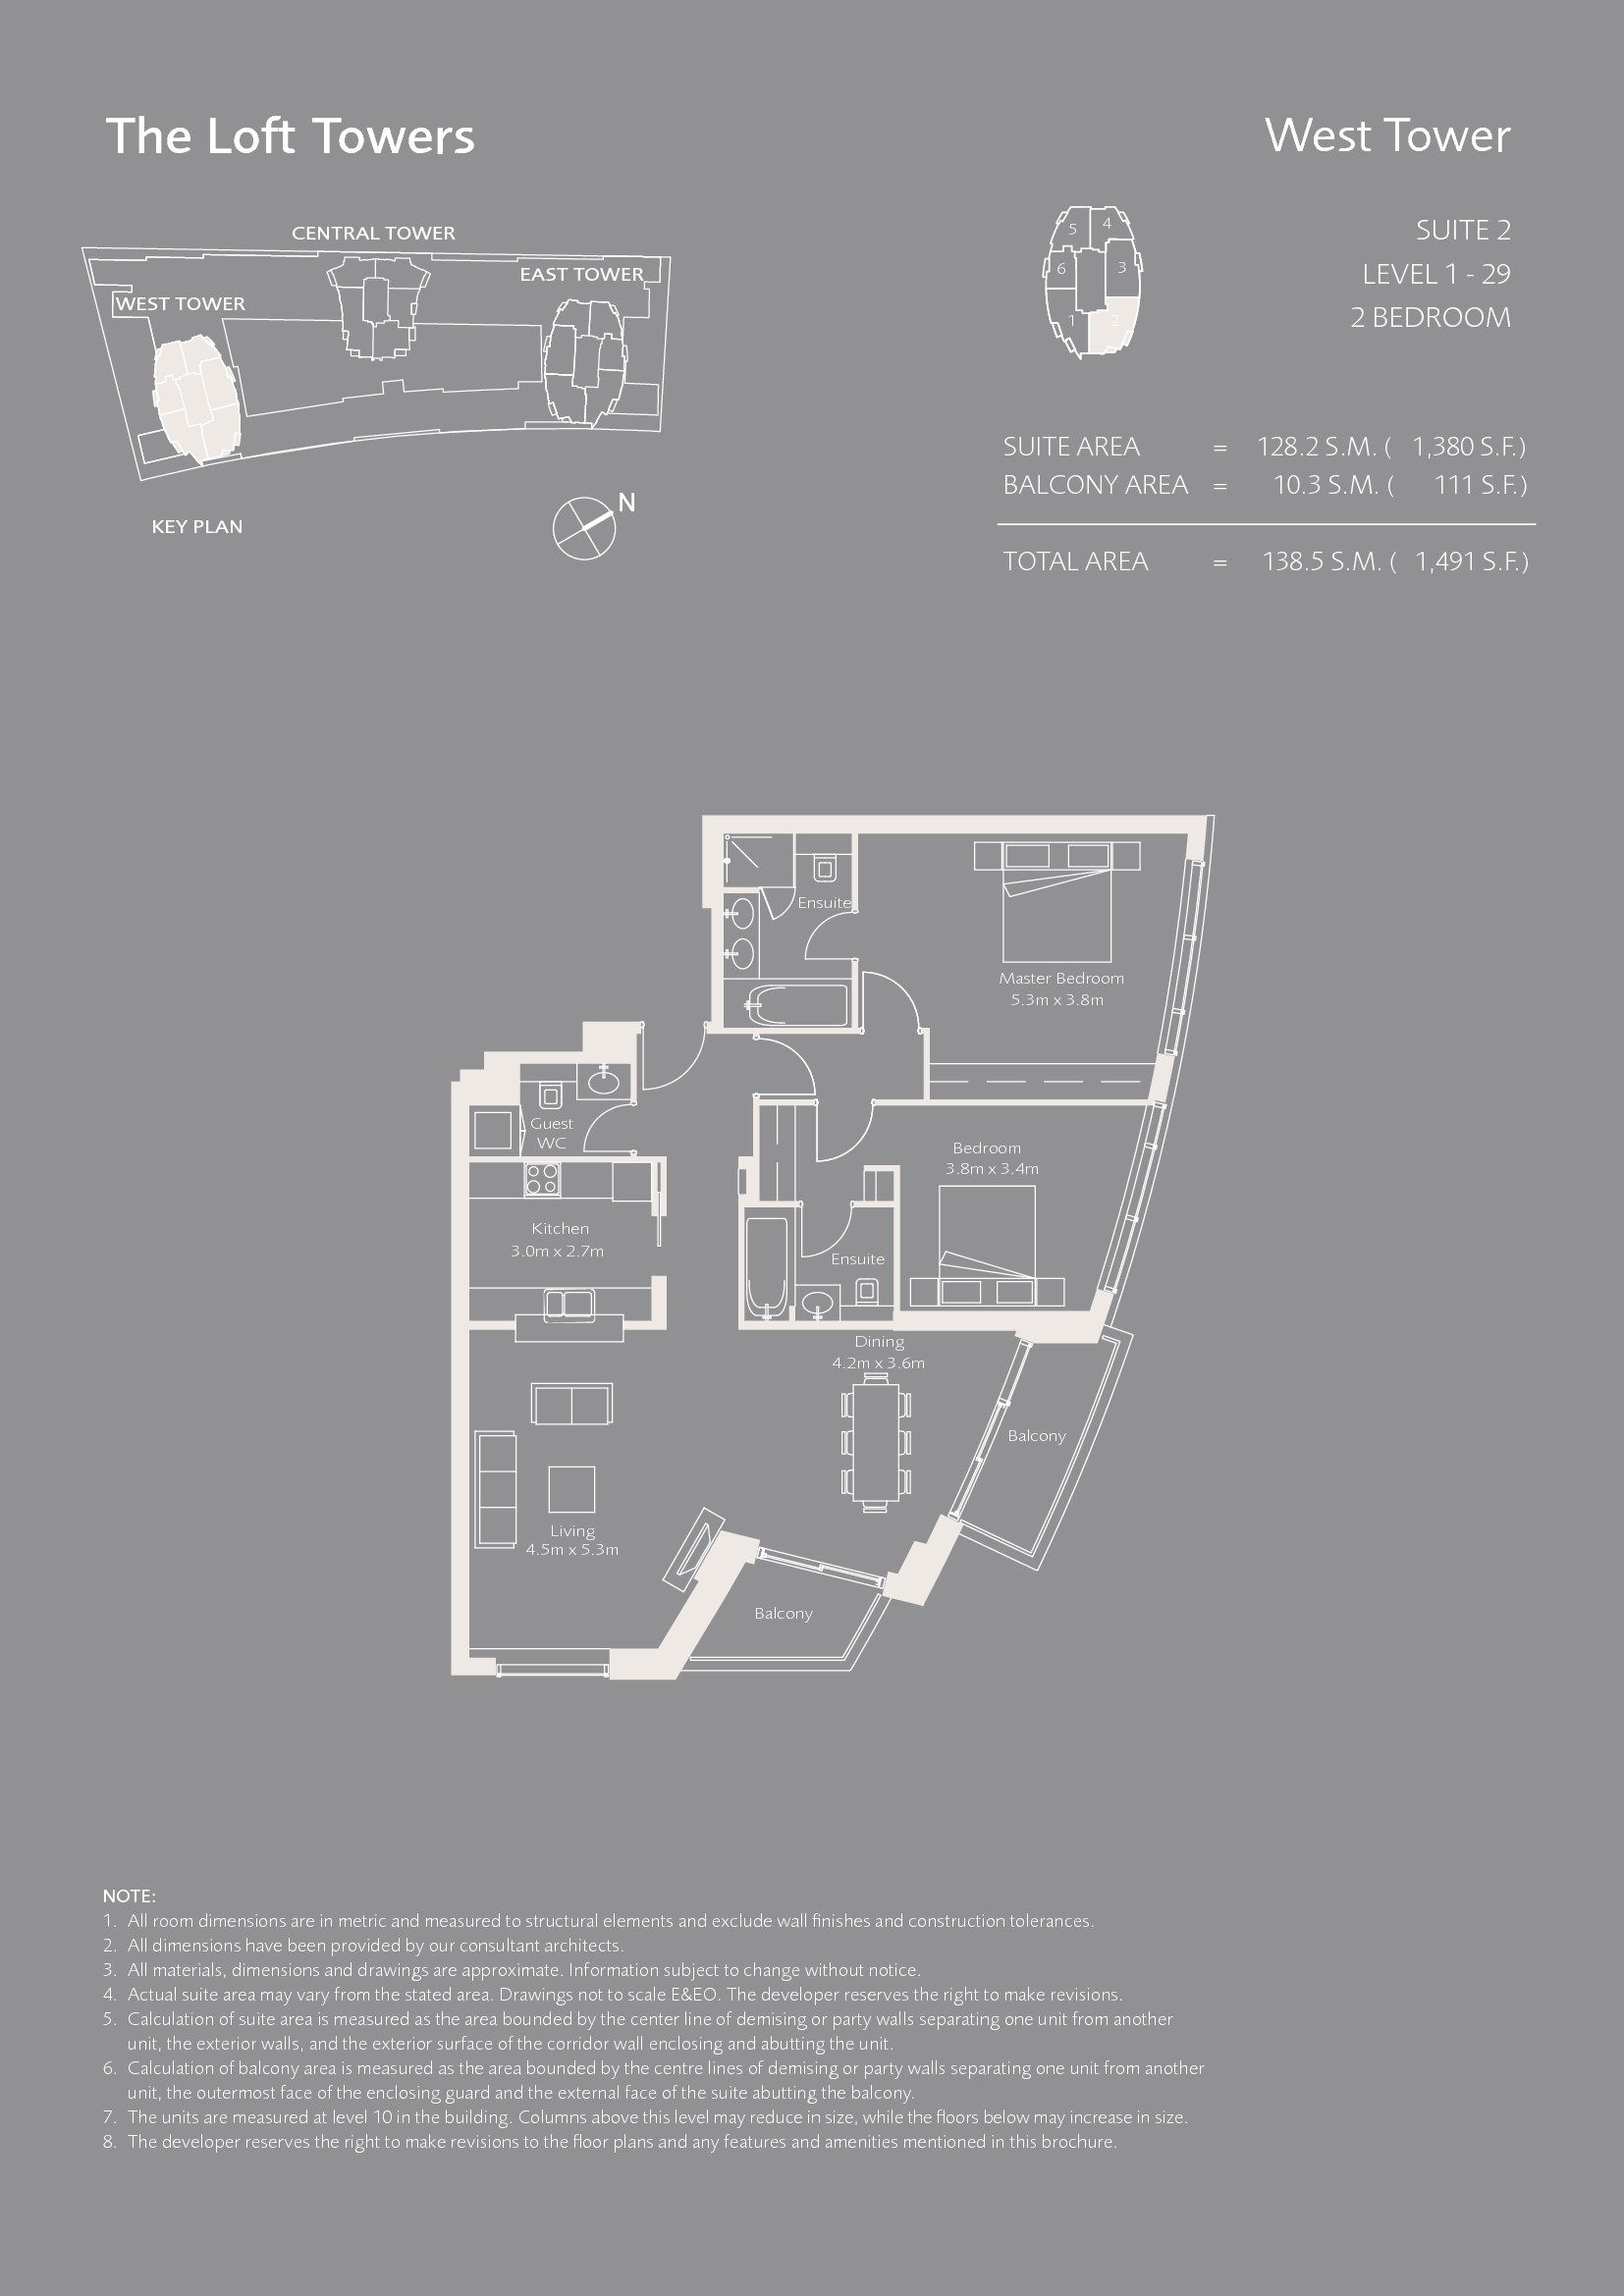 Lofts West Tower Floor Plans - Downtown Dubai